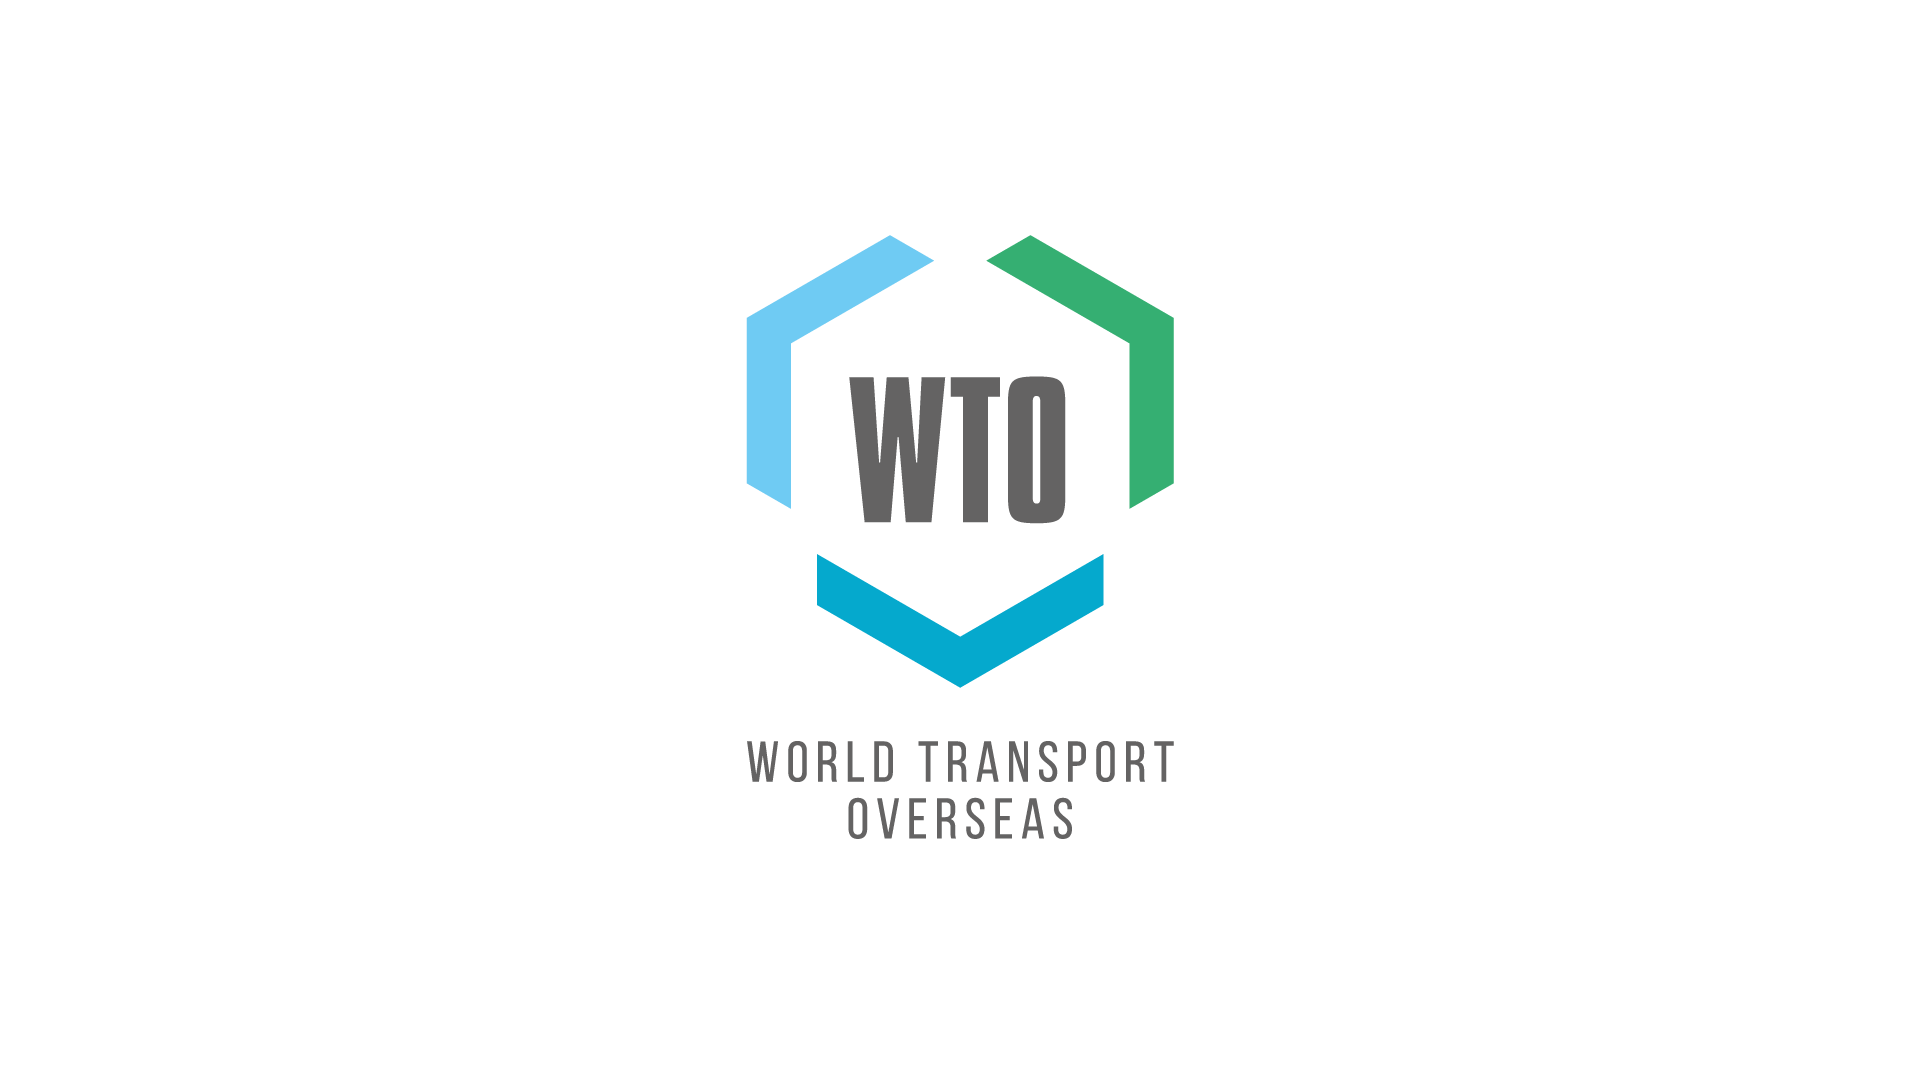 World Transport Overseas unveils a new corporate identity